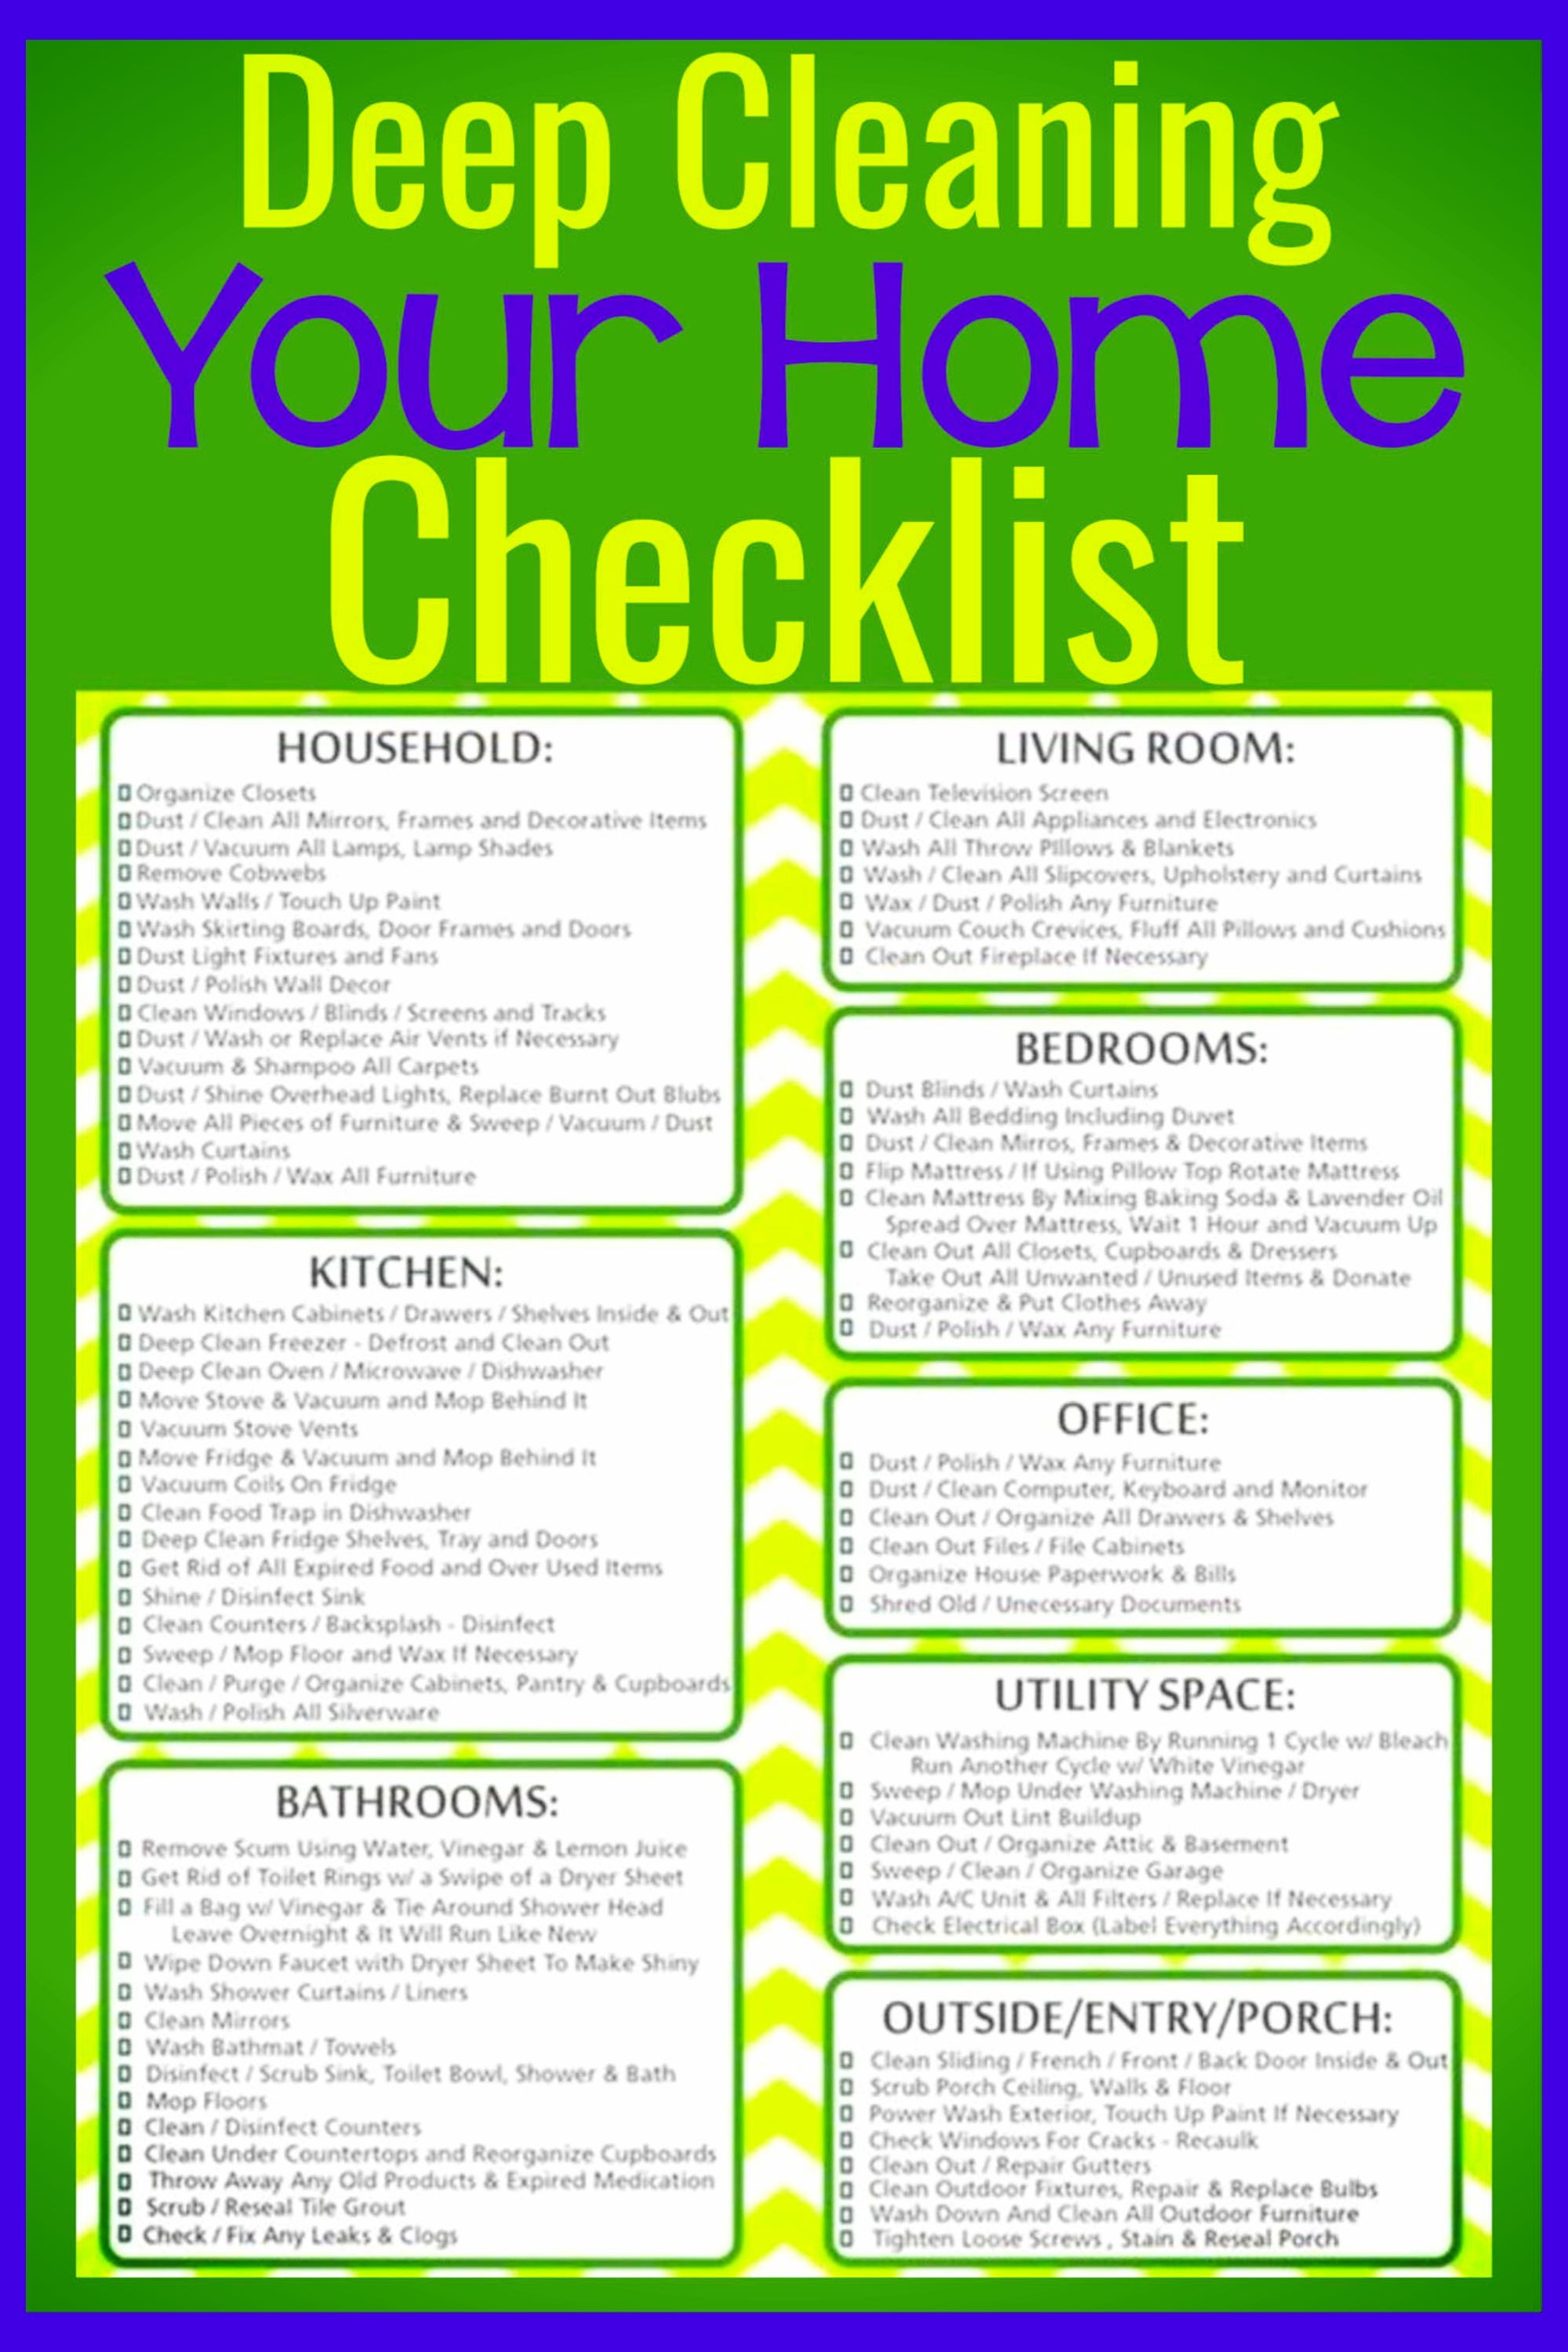 Deep Cleaning Checklist Free Printable Room By Room Deep Cleaning Checklist Deep Cleaning Deep Cleaning Checklist House Cleaning Tips